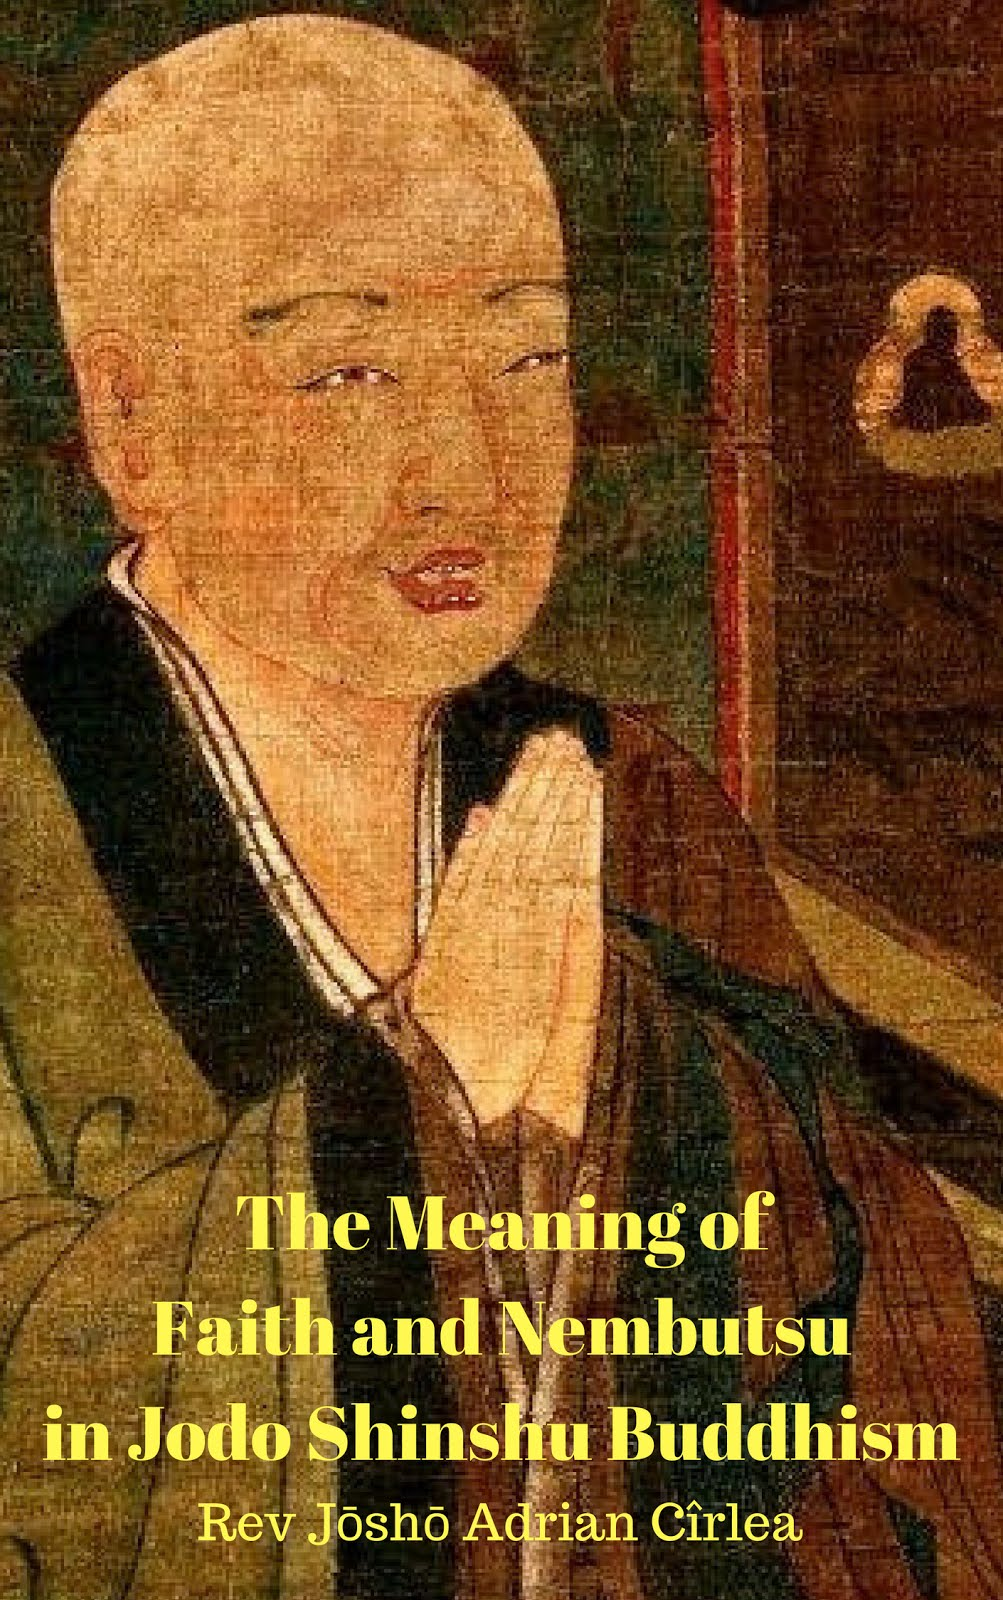 THE MEANING OF FAITH AND NEMBUTSU IN JODO SHINSHU BUDDHISM